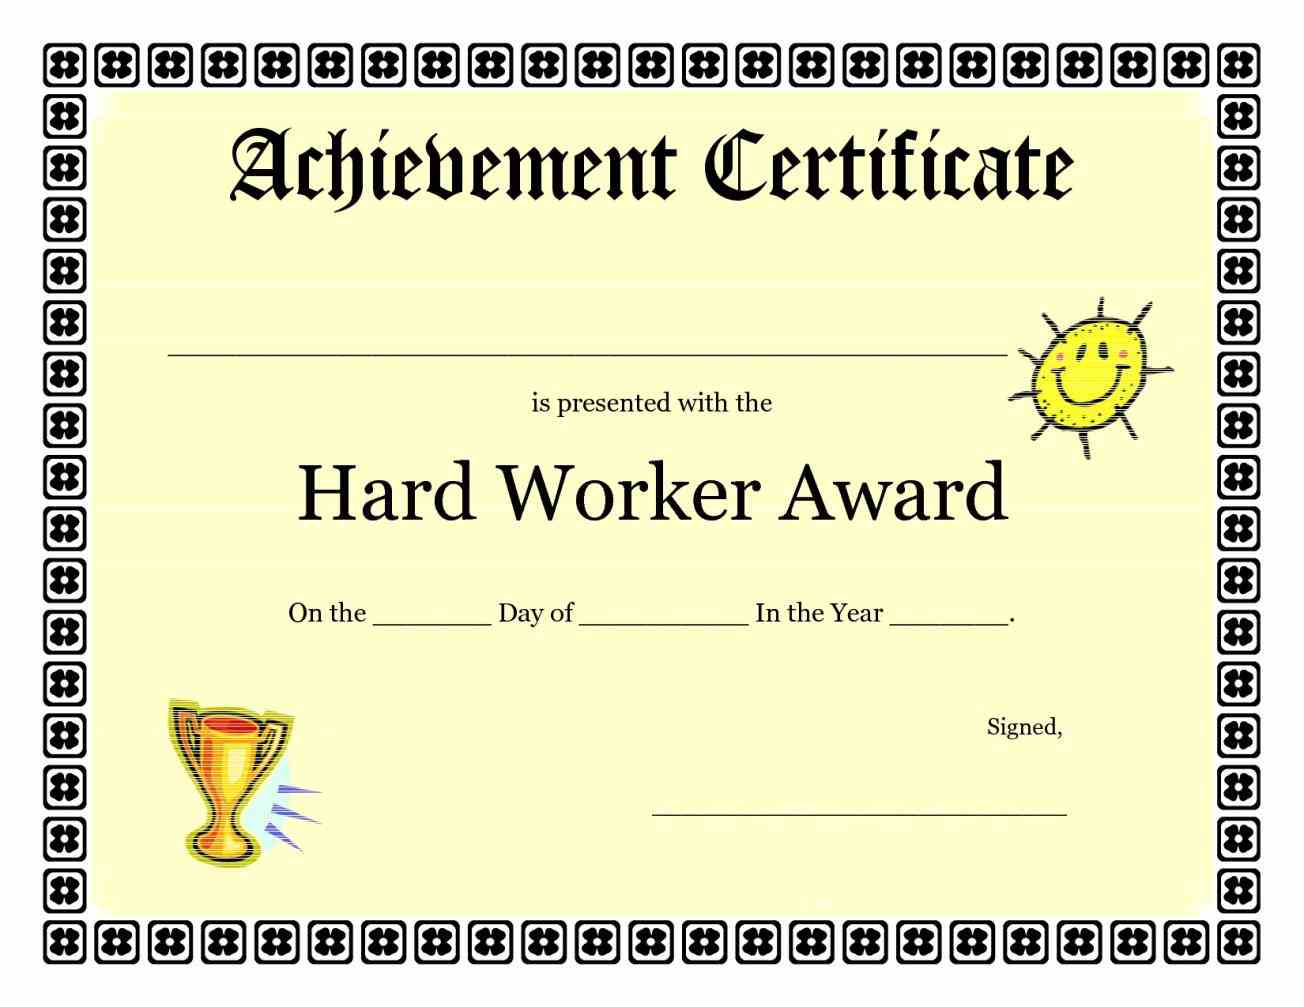 006 Certificate Of Achievement Word Template Ideas Doc General Free - Free Customizable Printable Certificates Of Achievement